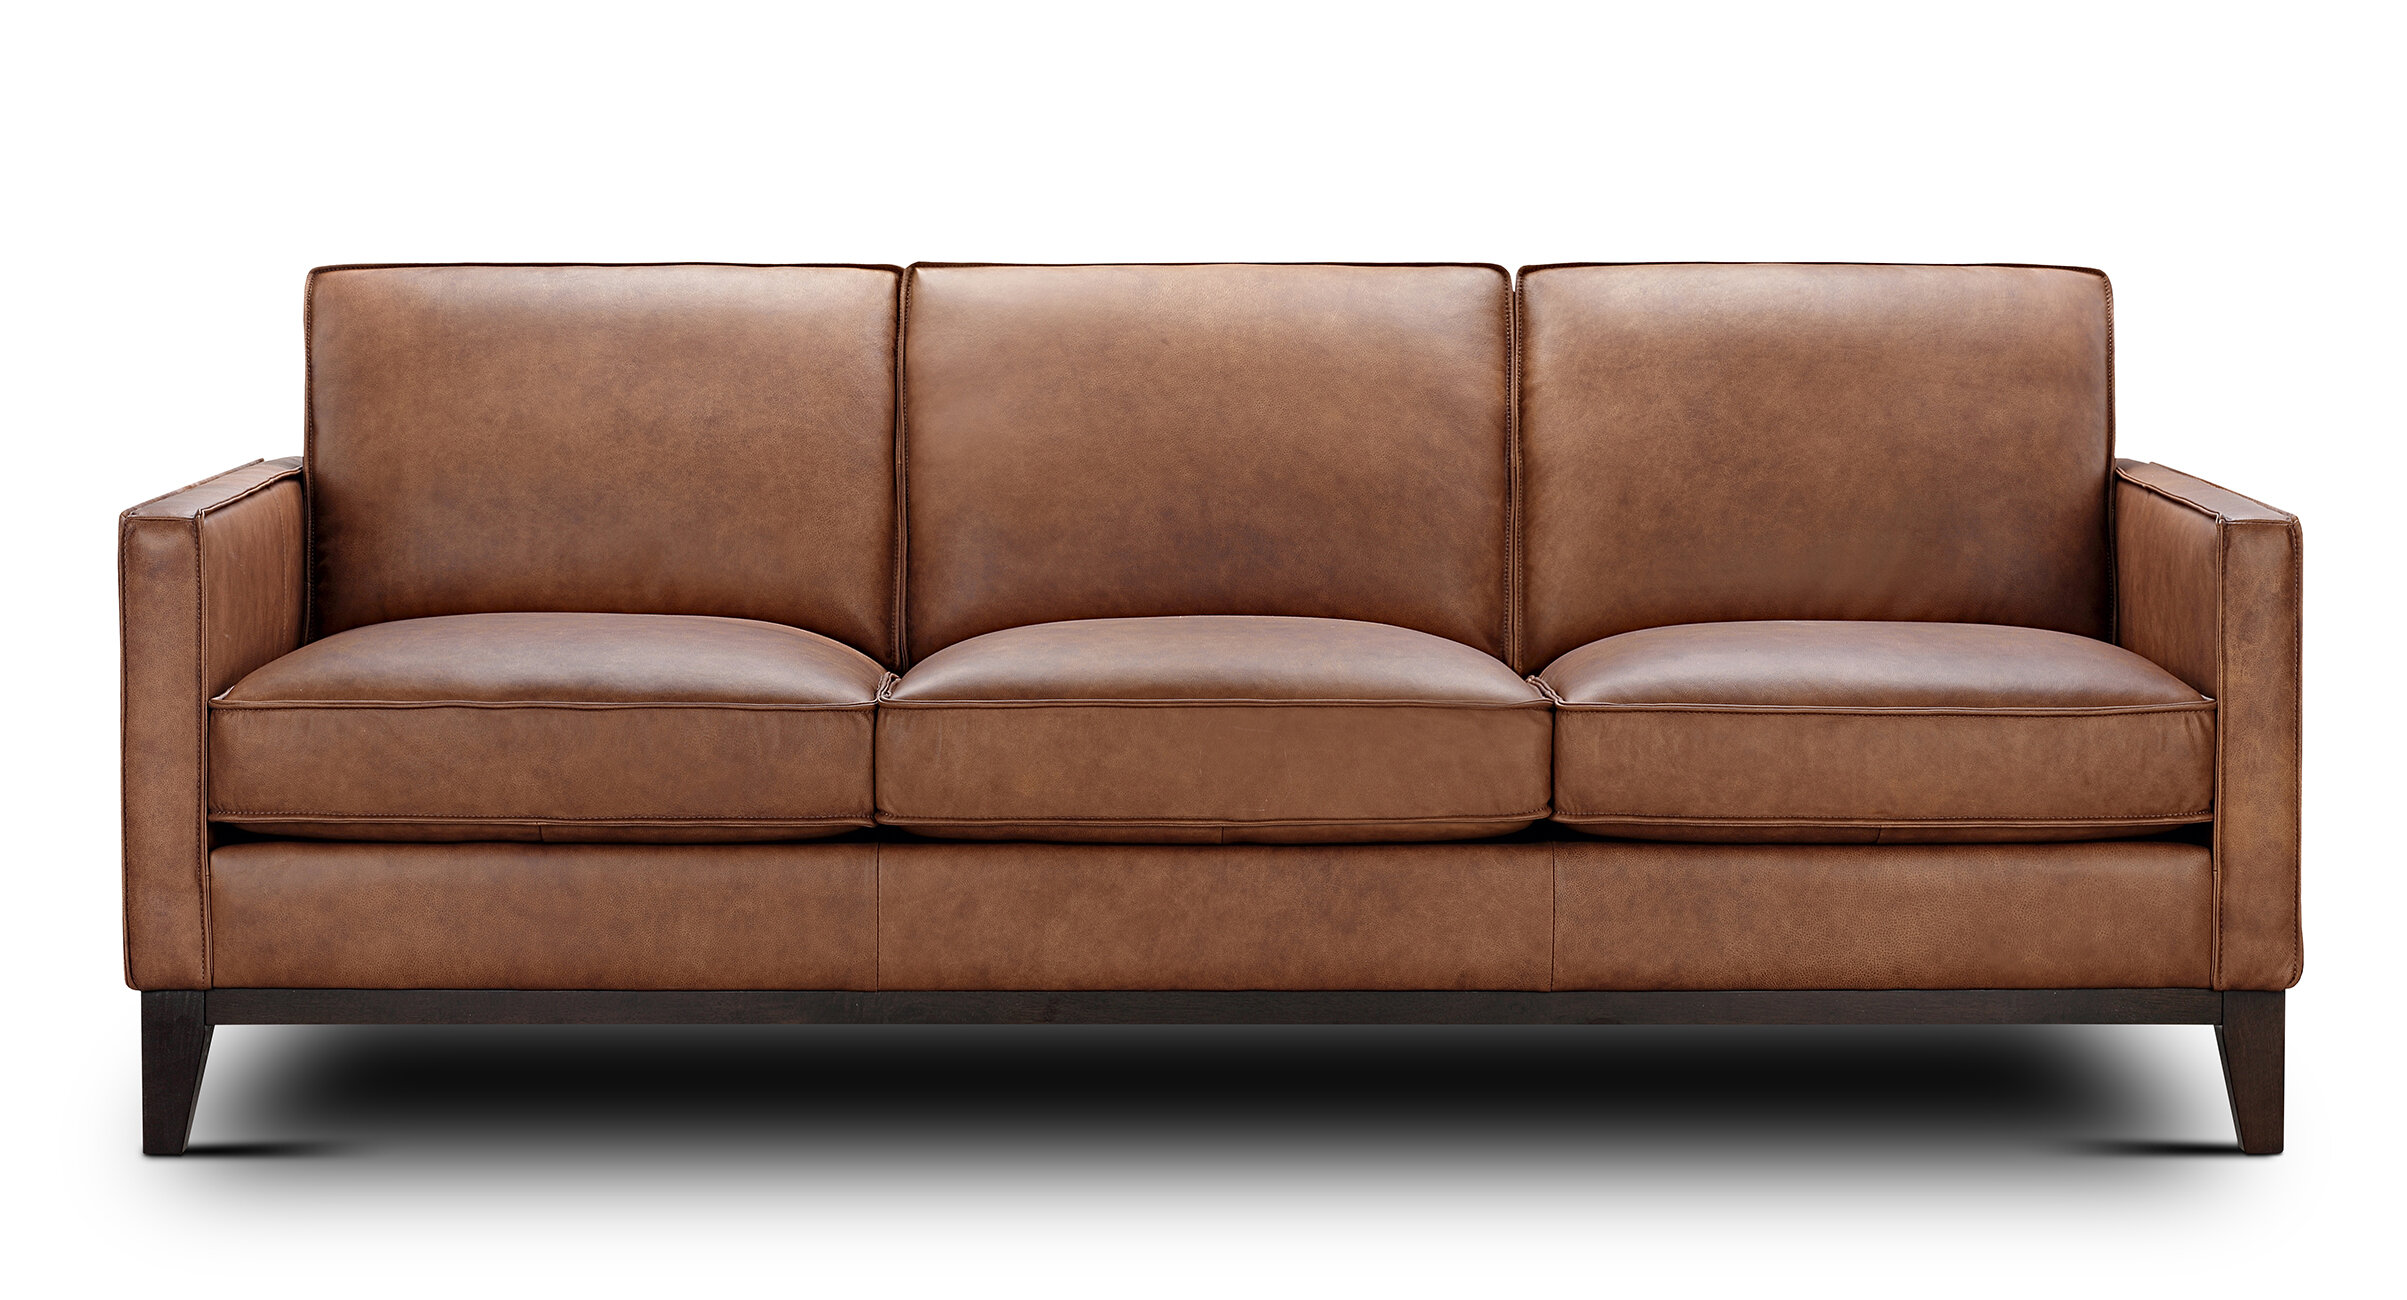 Foundry Select Whitson Leather Sofa